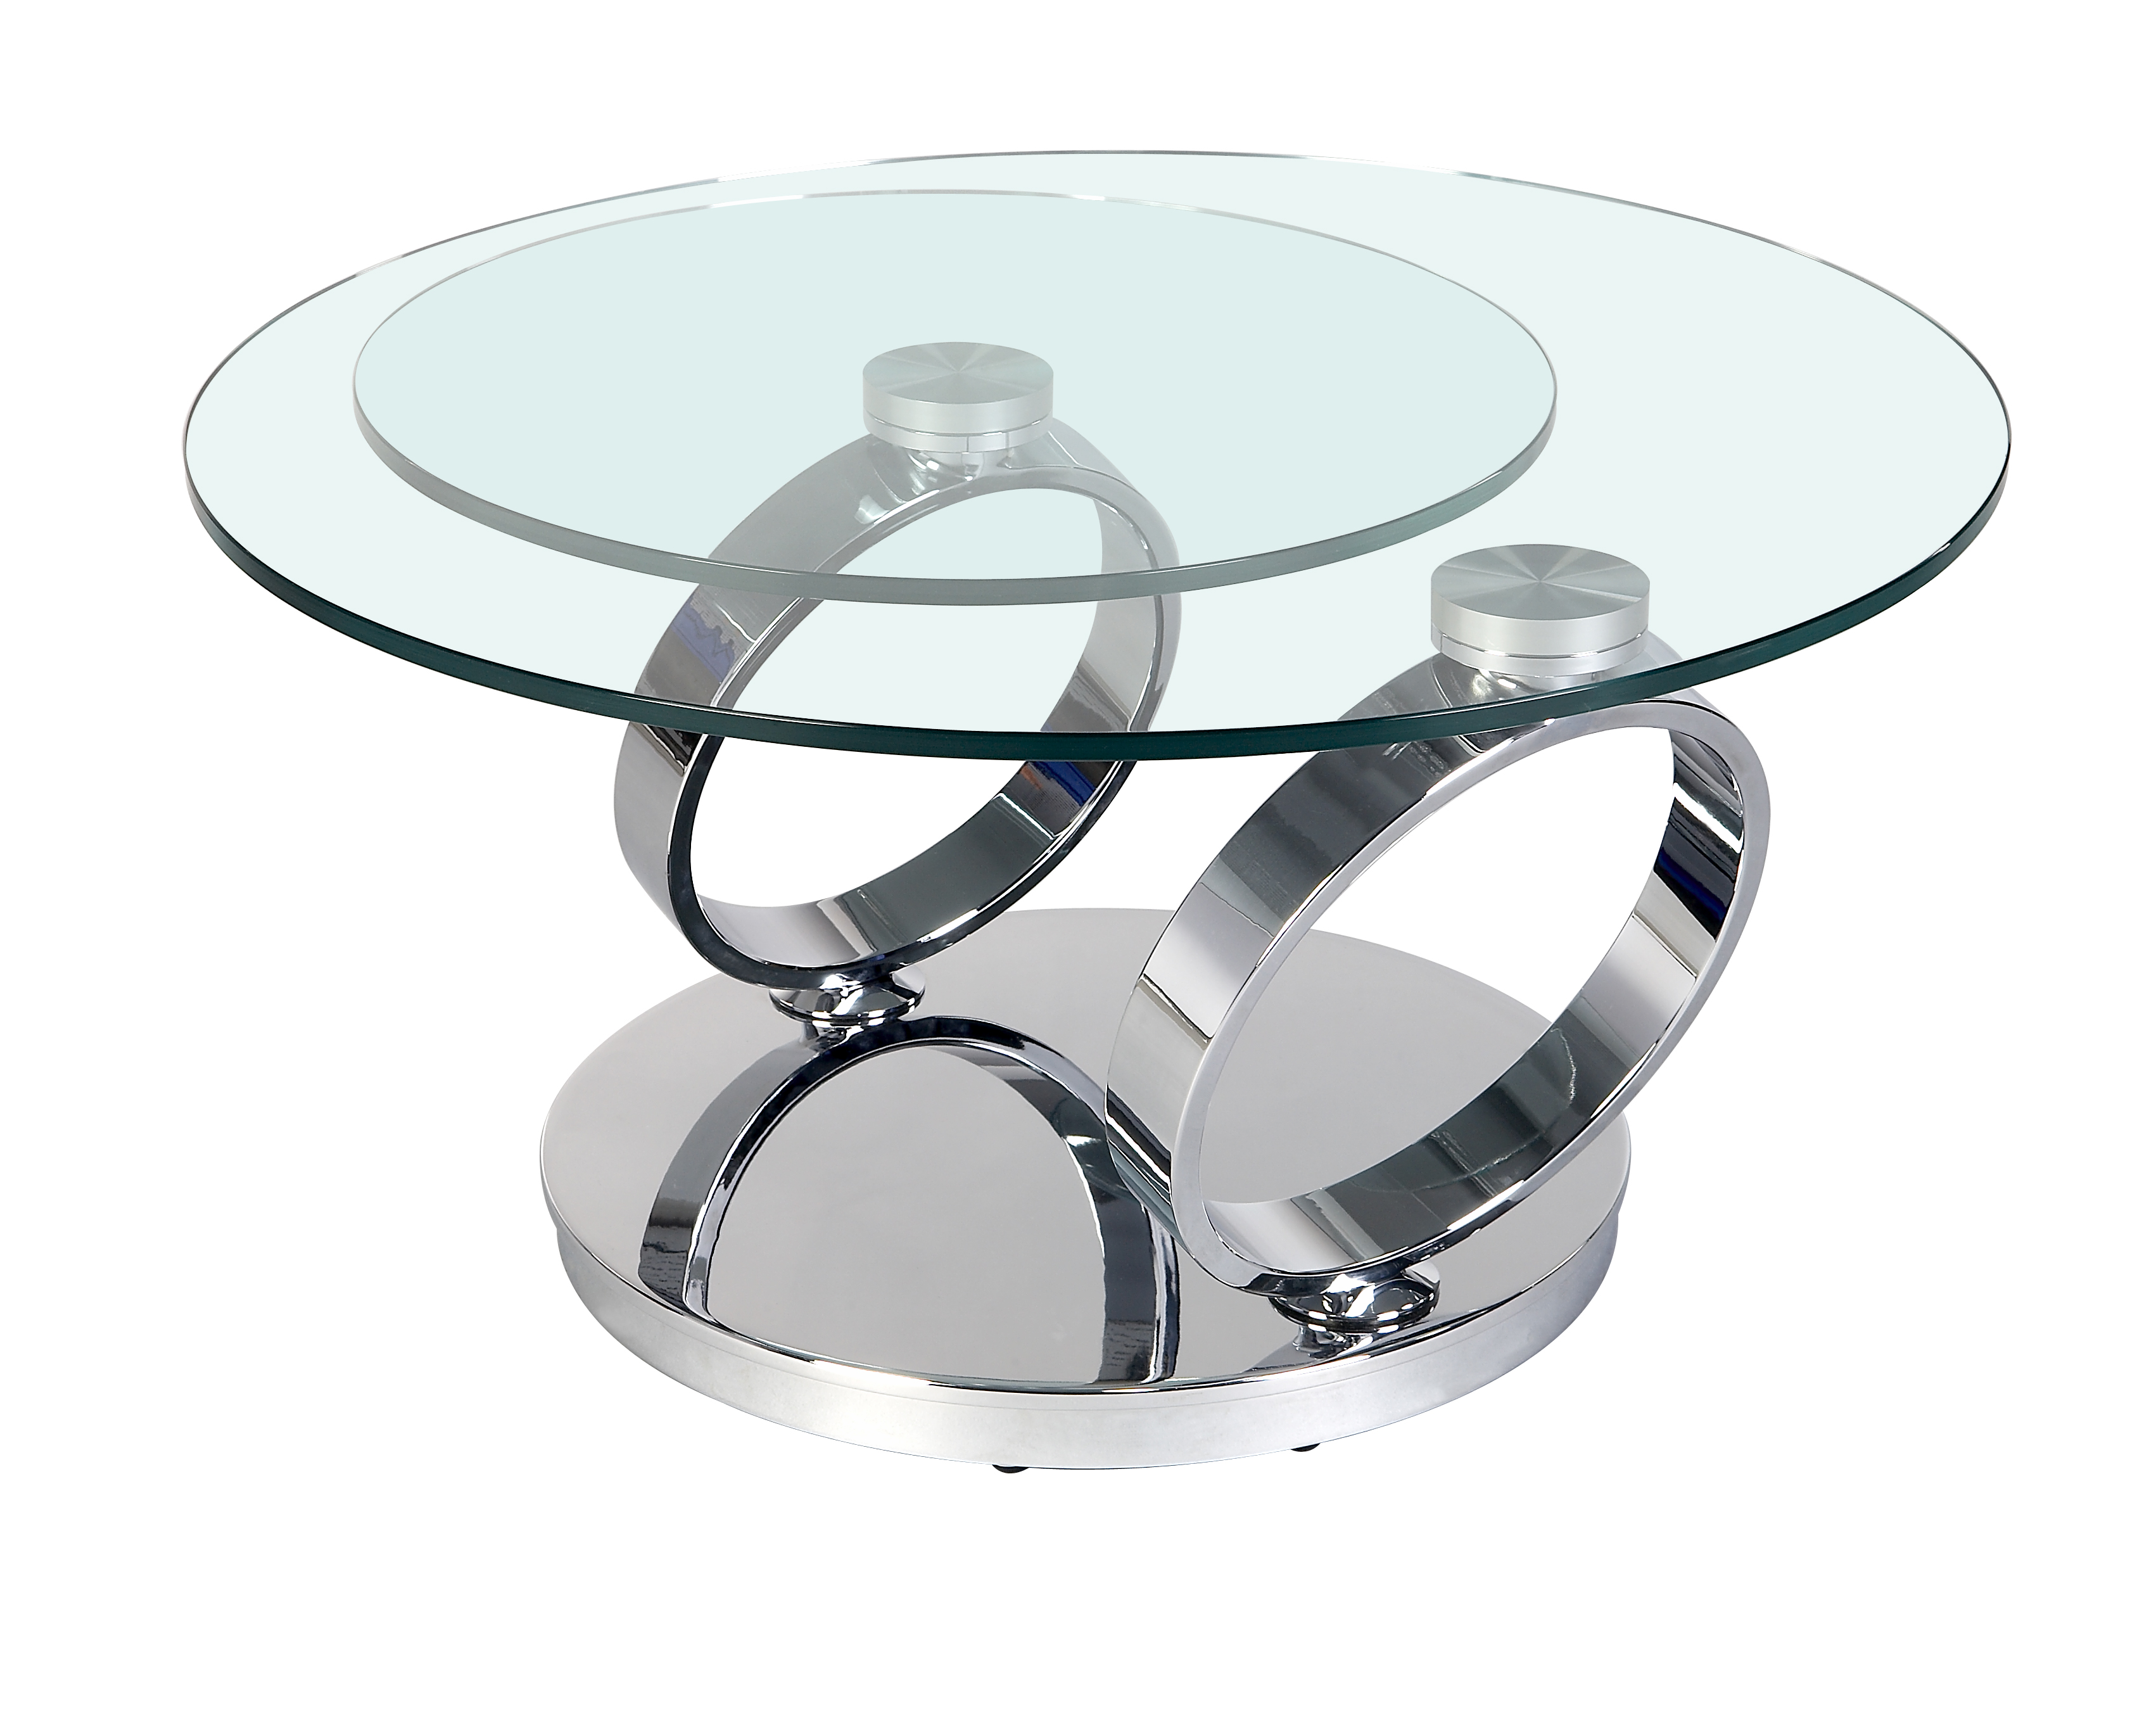 Table basse olympe 8157 eda concept collection de for Position verre sur table